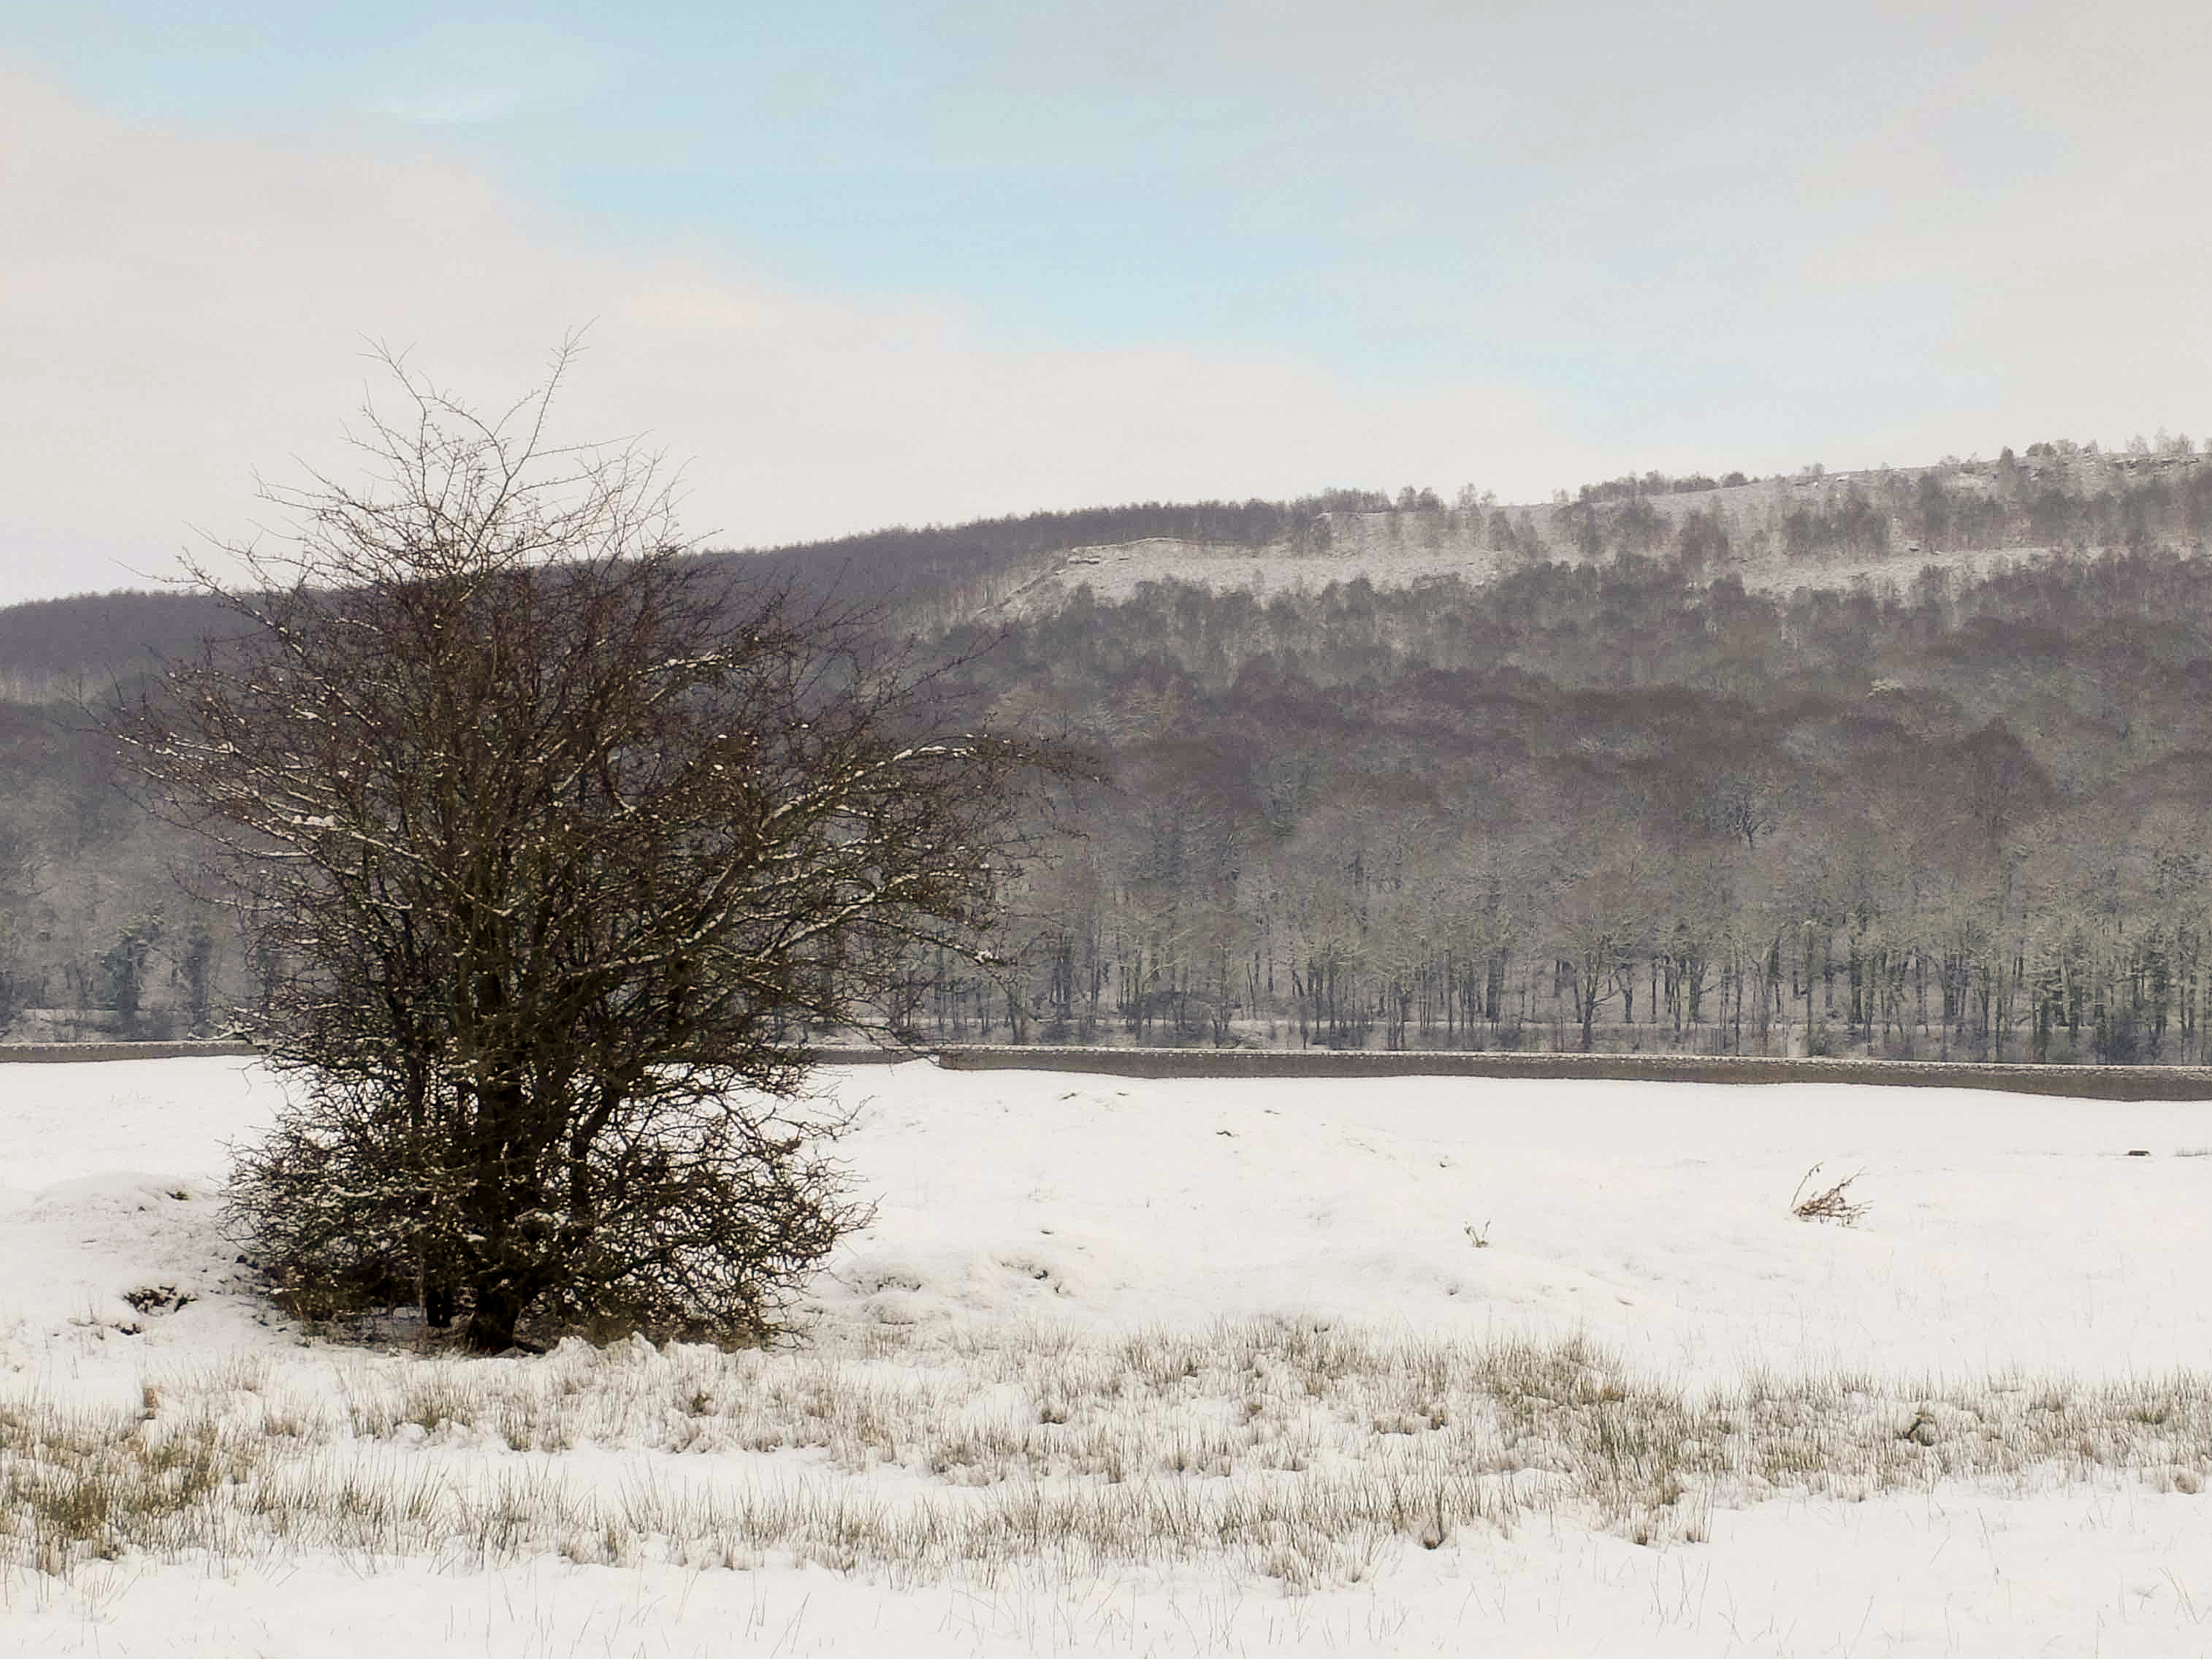 Winter Yorkshire Dales (3)